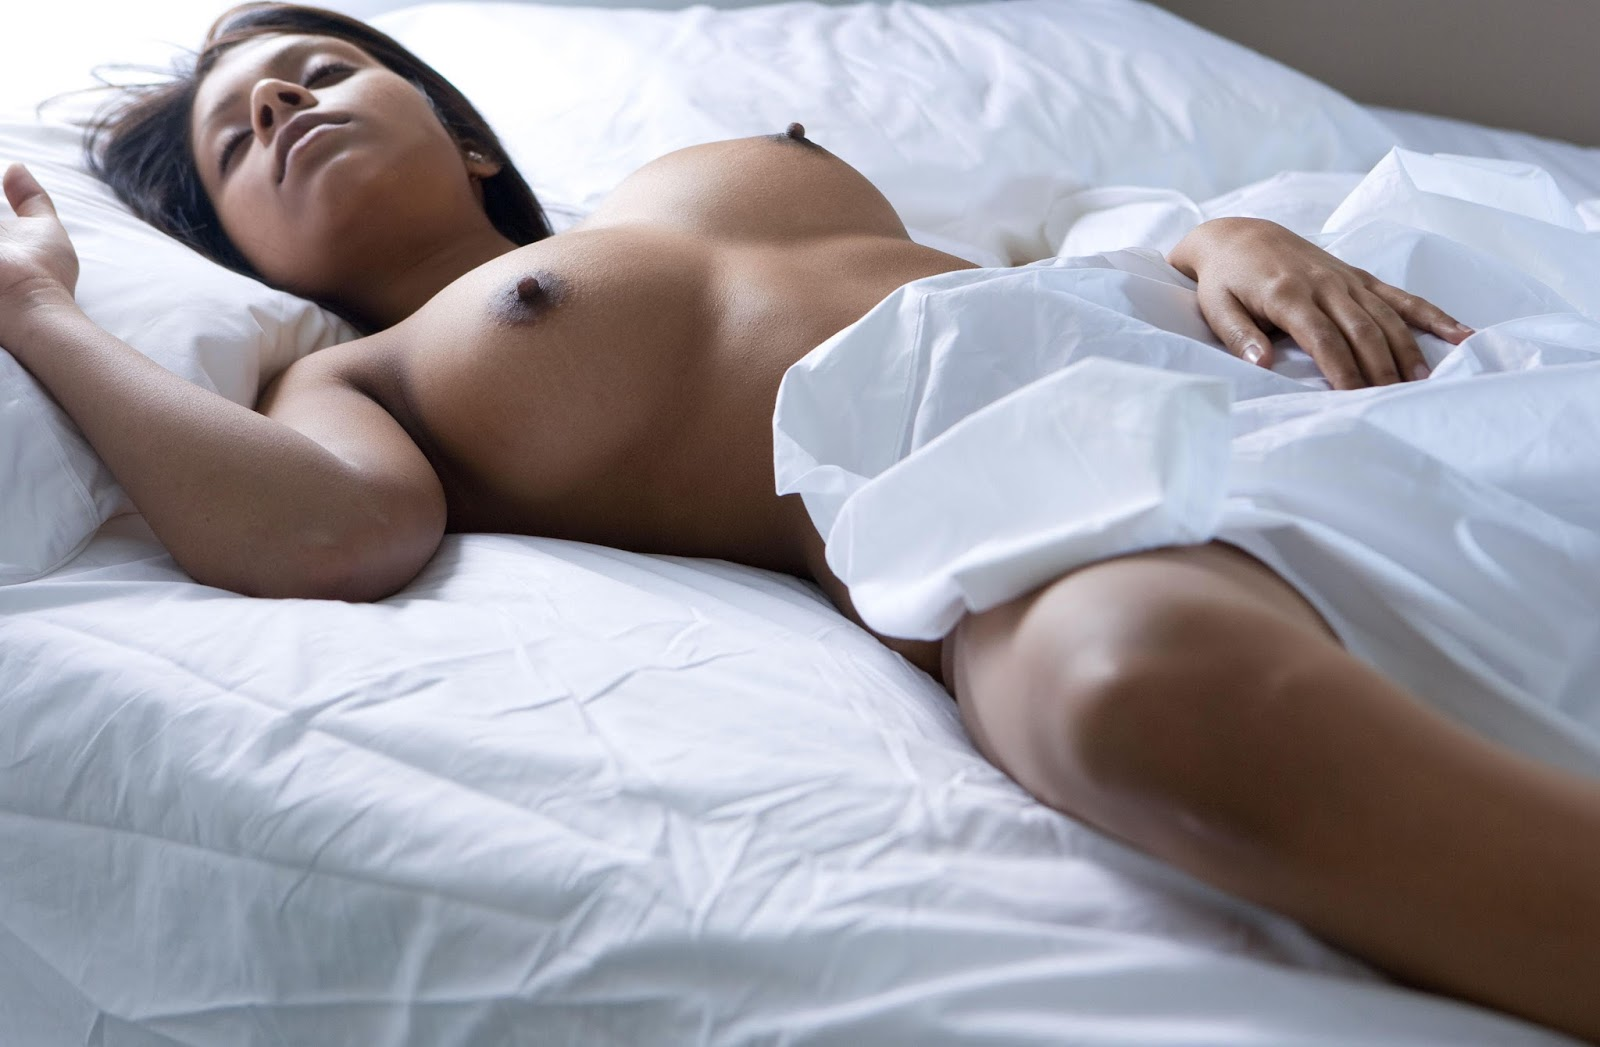 True erotic sleeping wife stories #6